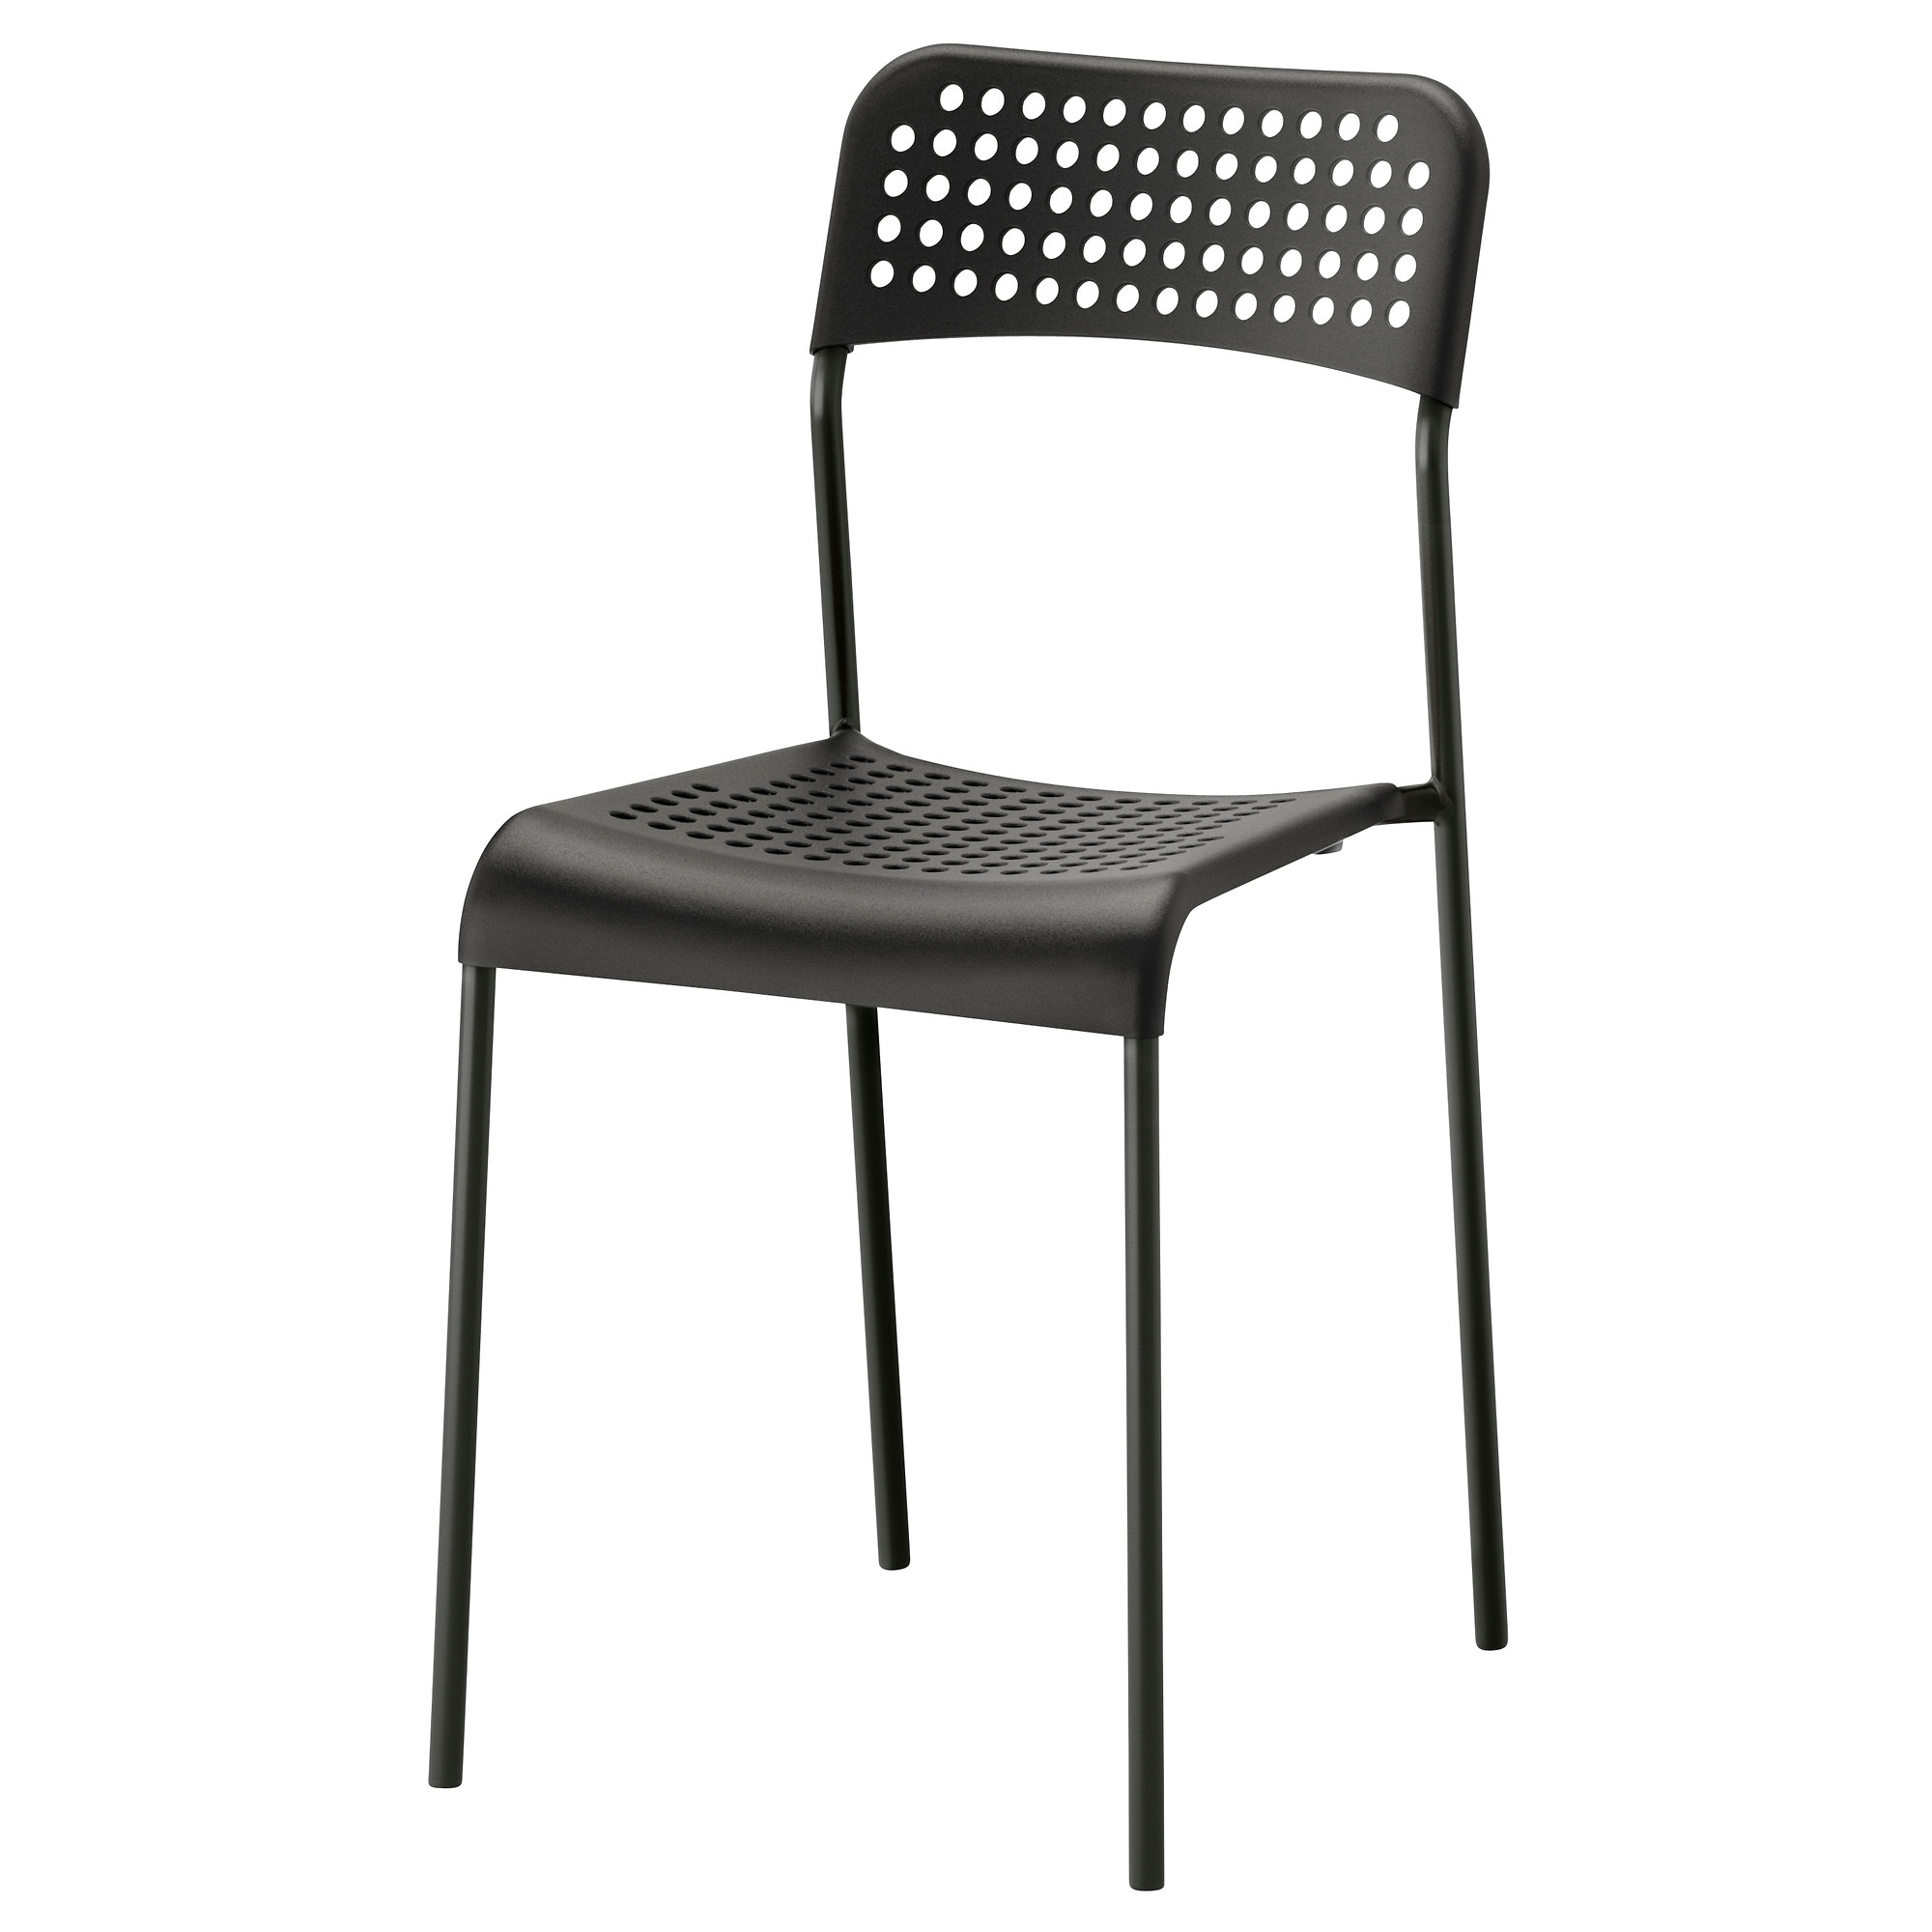 Good ADDE Chair   IKEA